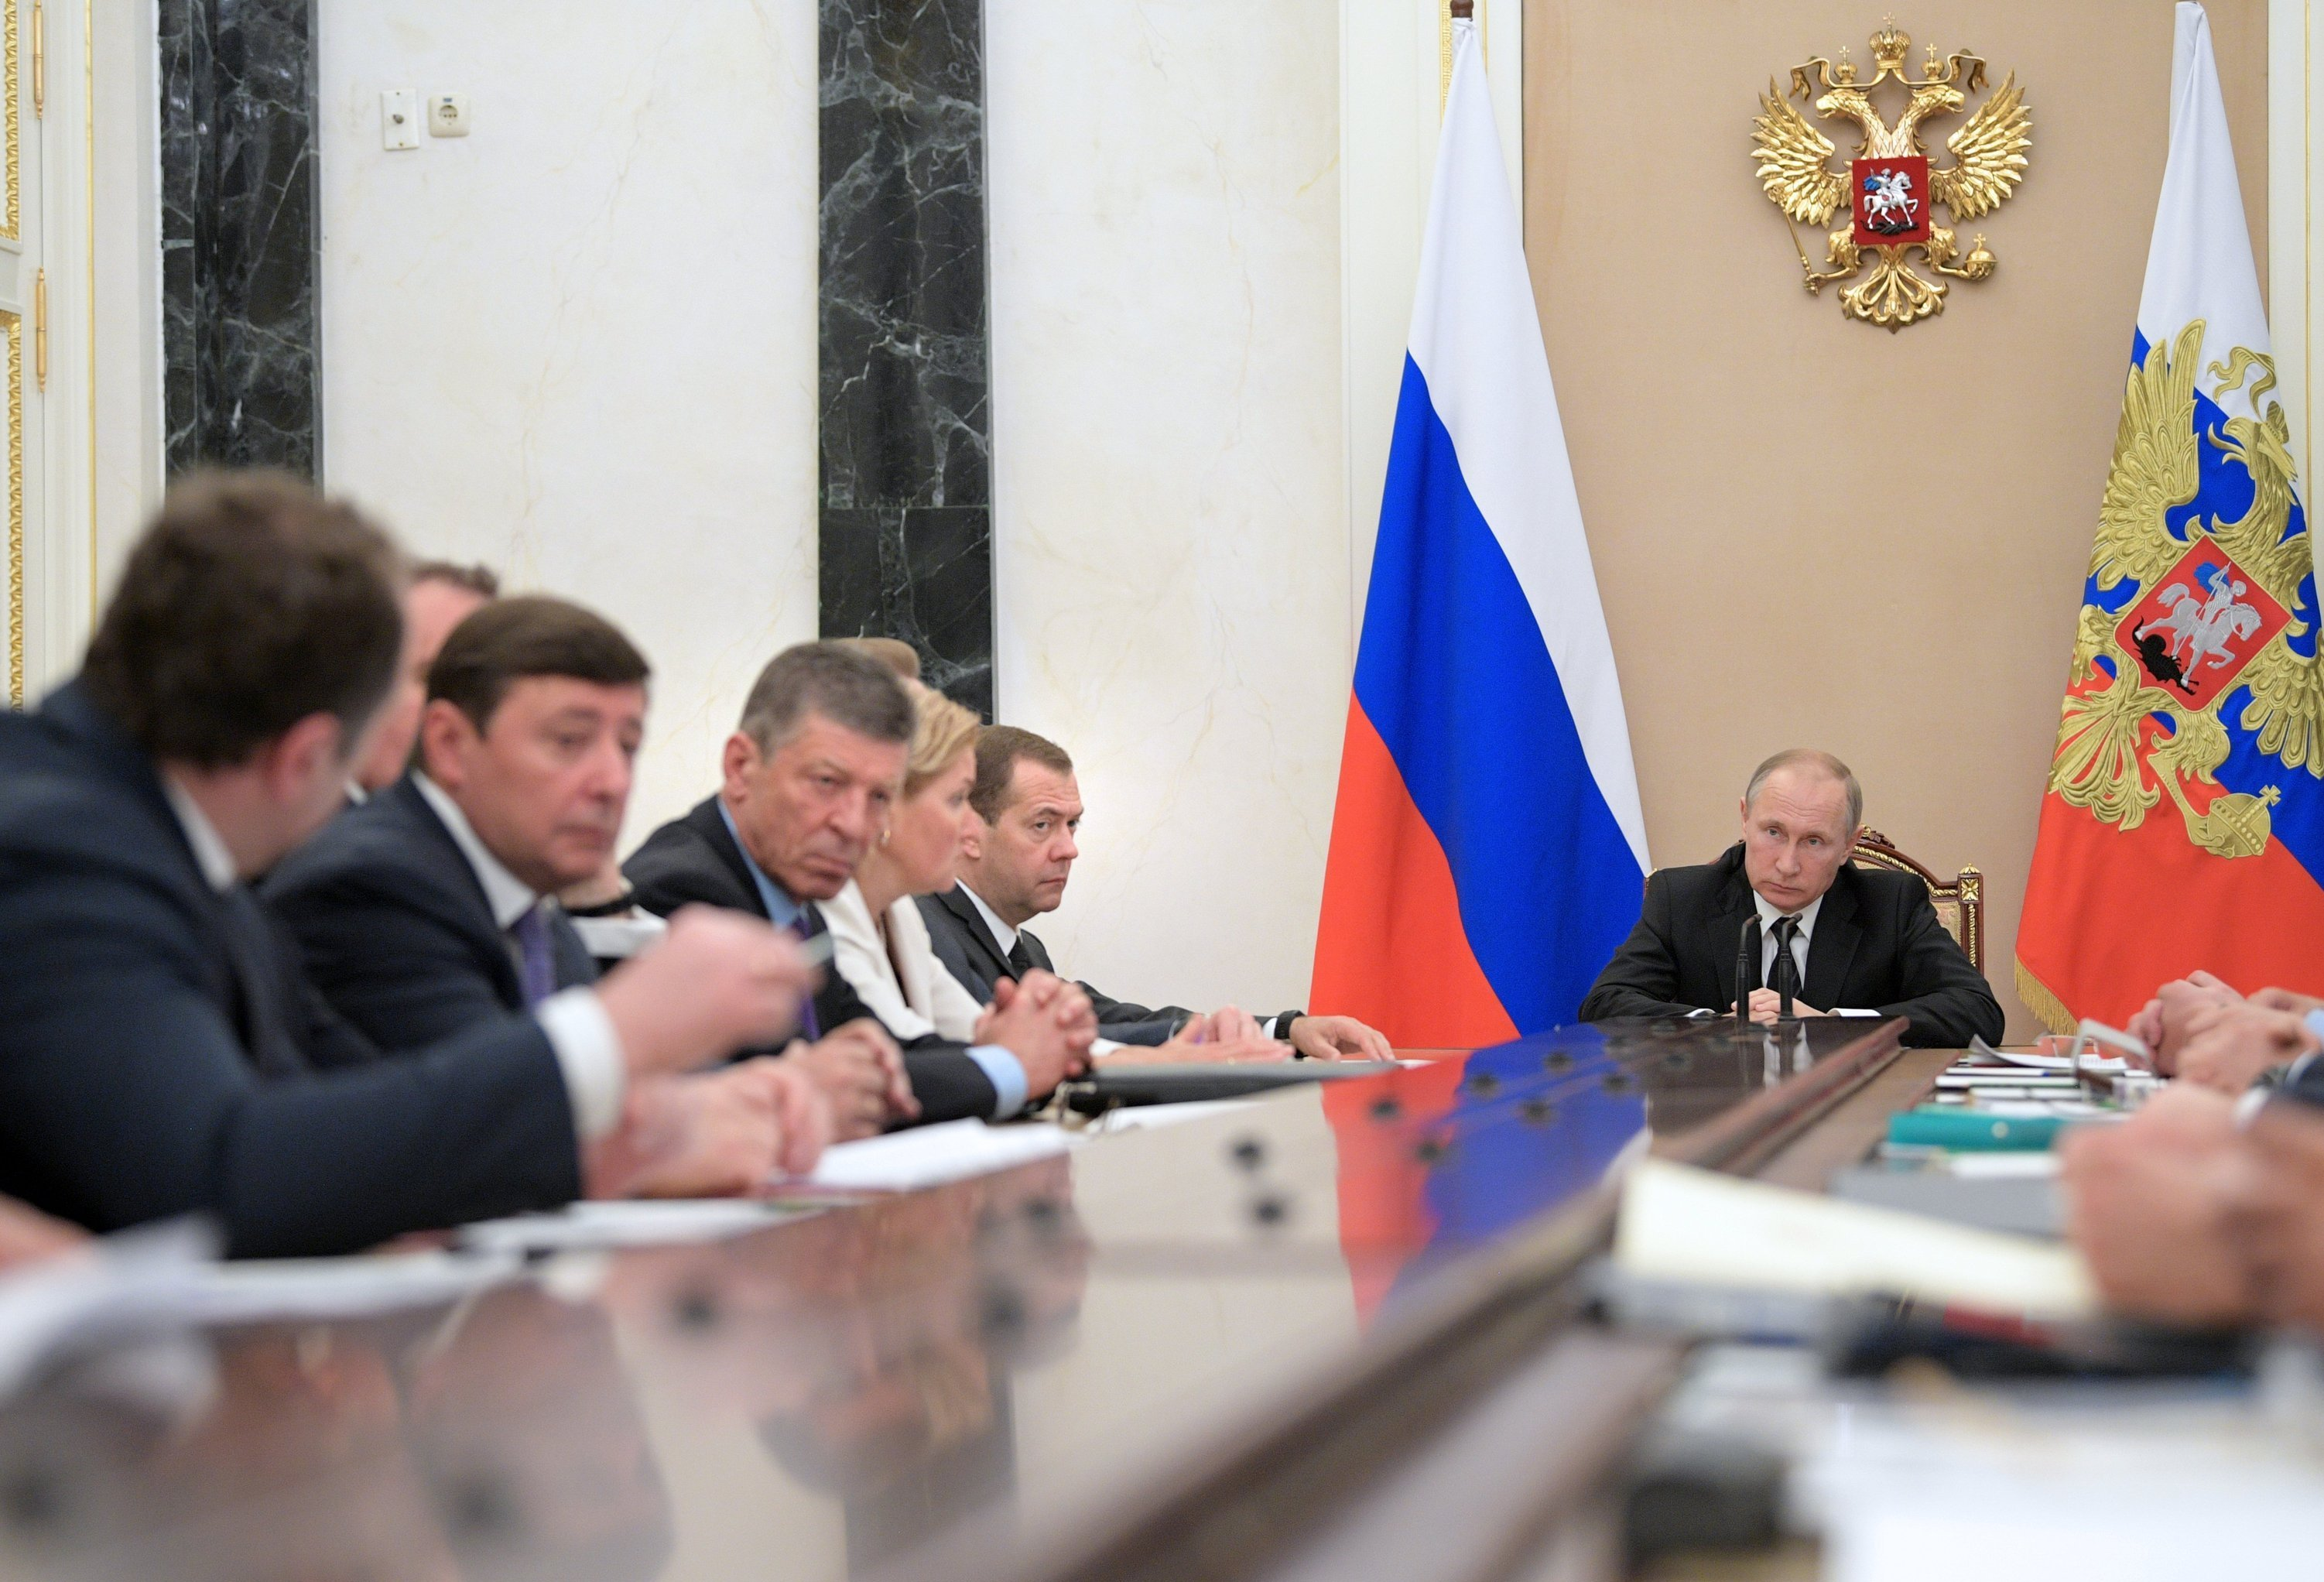 President Vladimir Putin and Prime Minister Dmitry Medvedev at a Government meeting in Kremlin